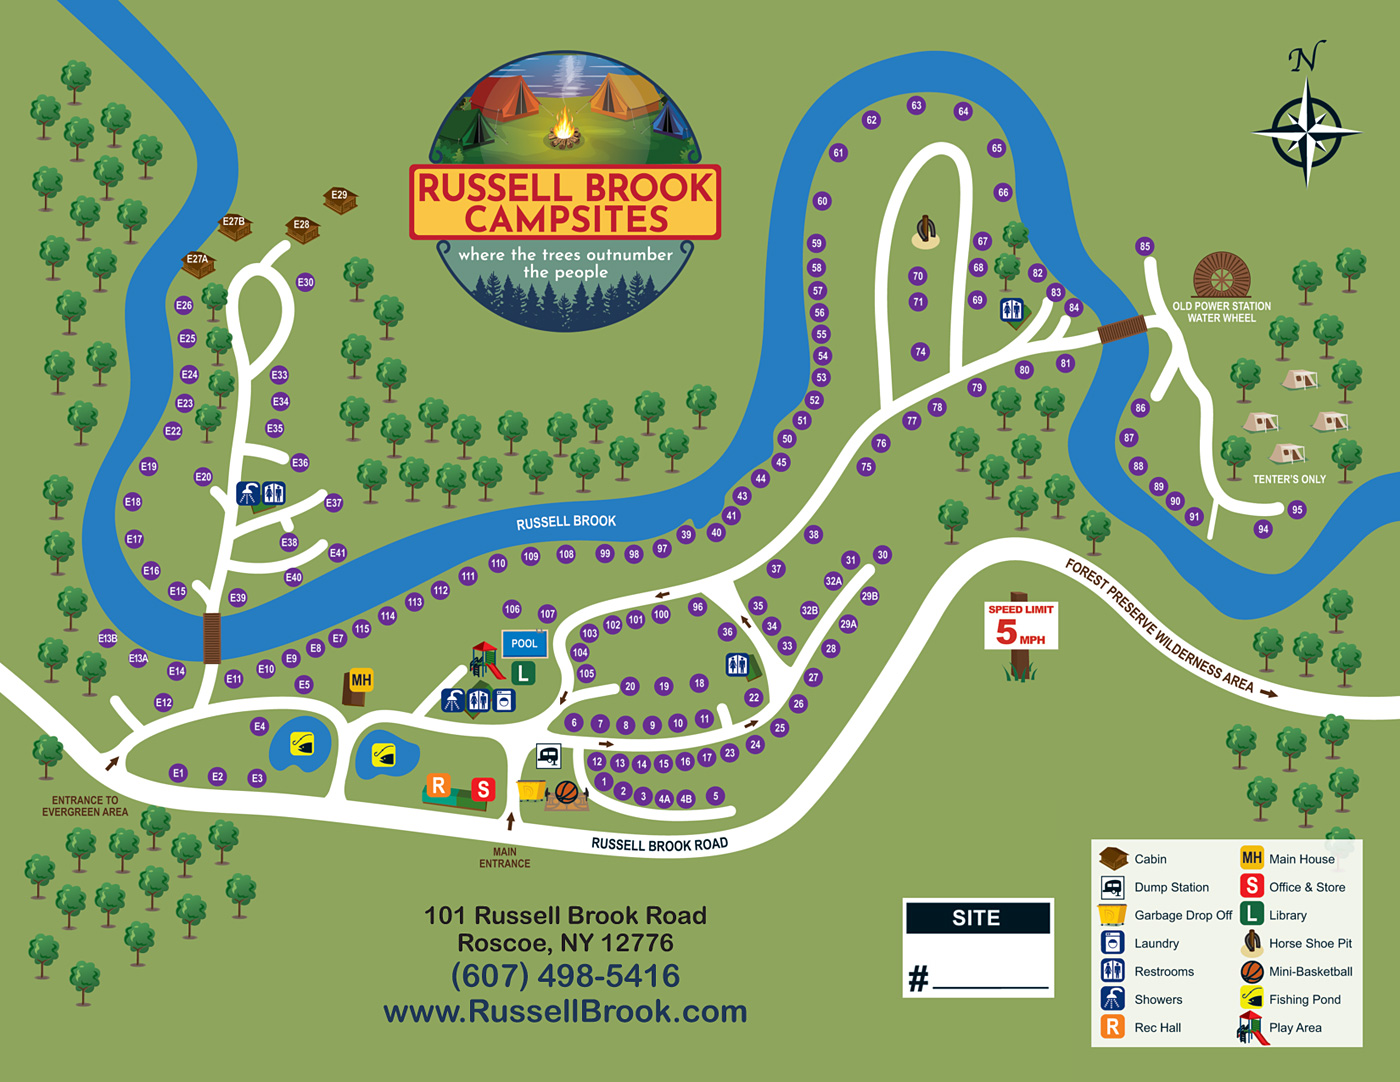 Russell Brook Campsites Site Map